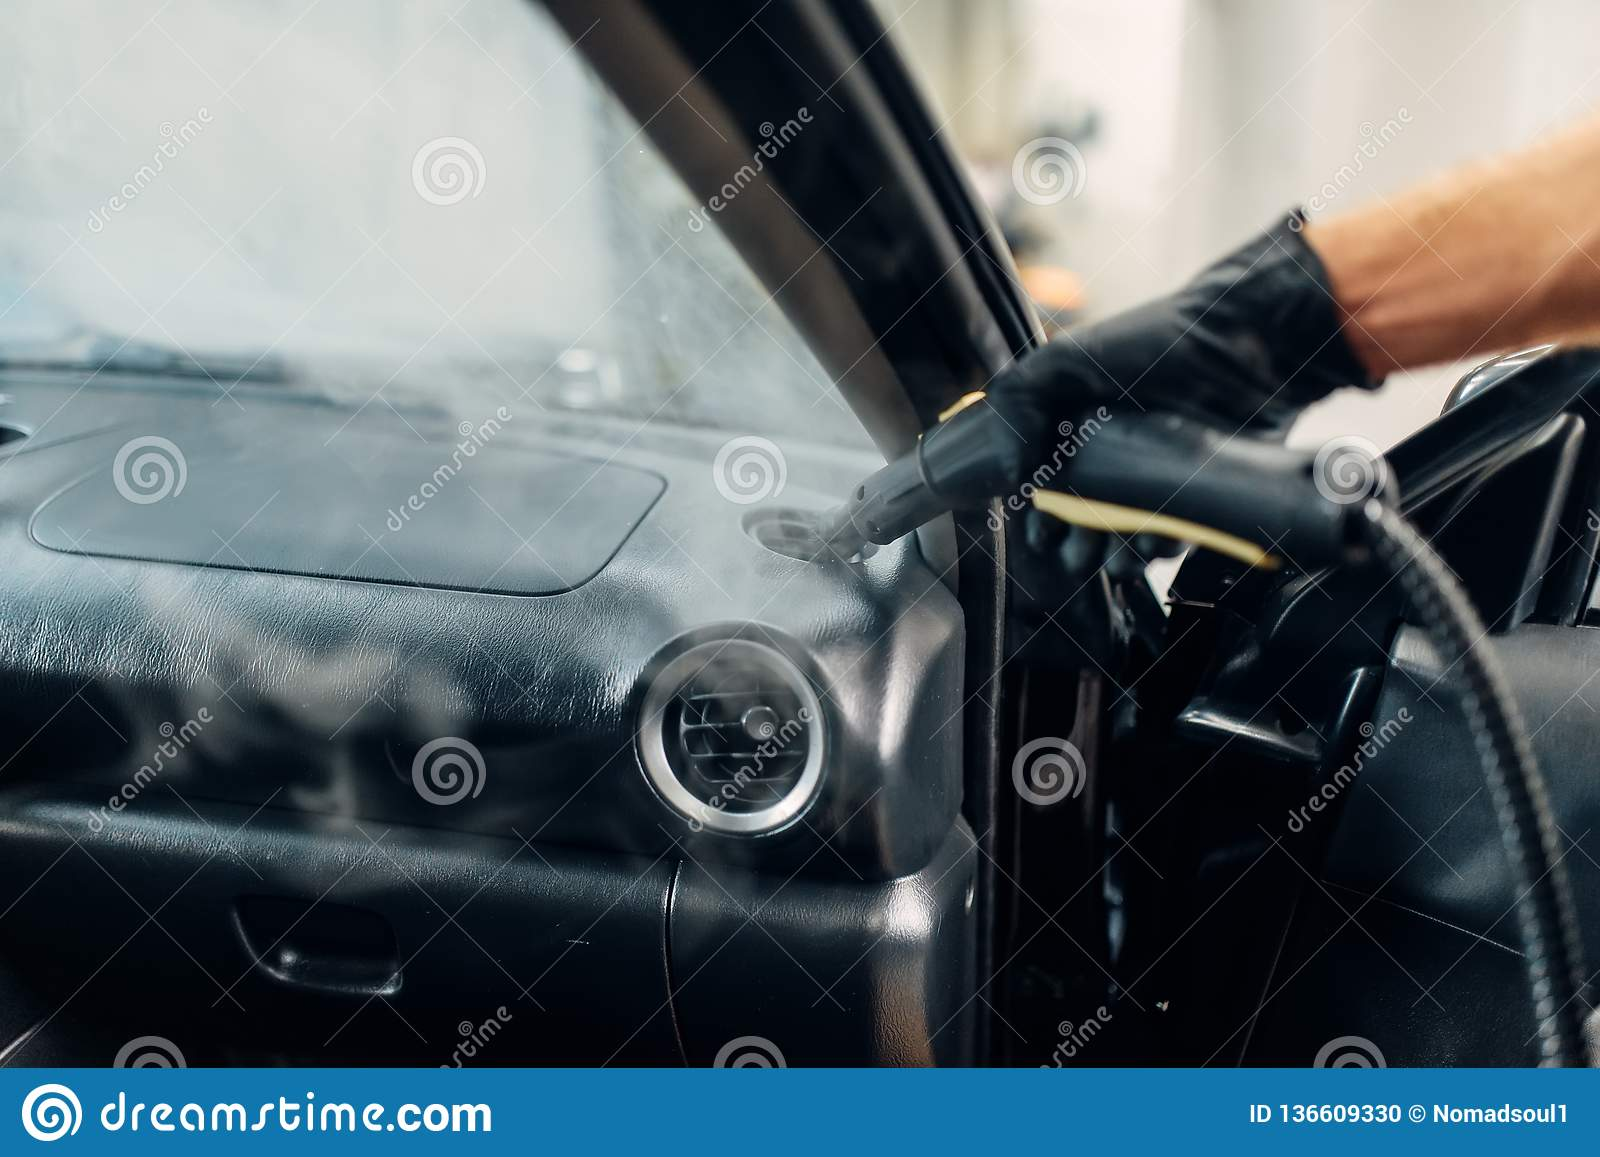 Auto Steam Cleaner >> Dry Cleaning Of Car Air Duct With Steam Cleaner Stock Photo